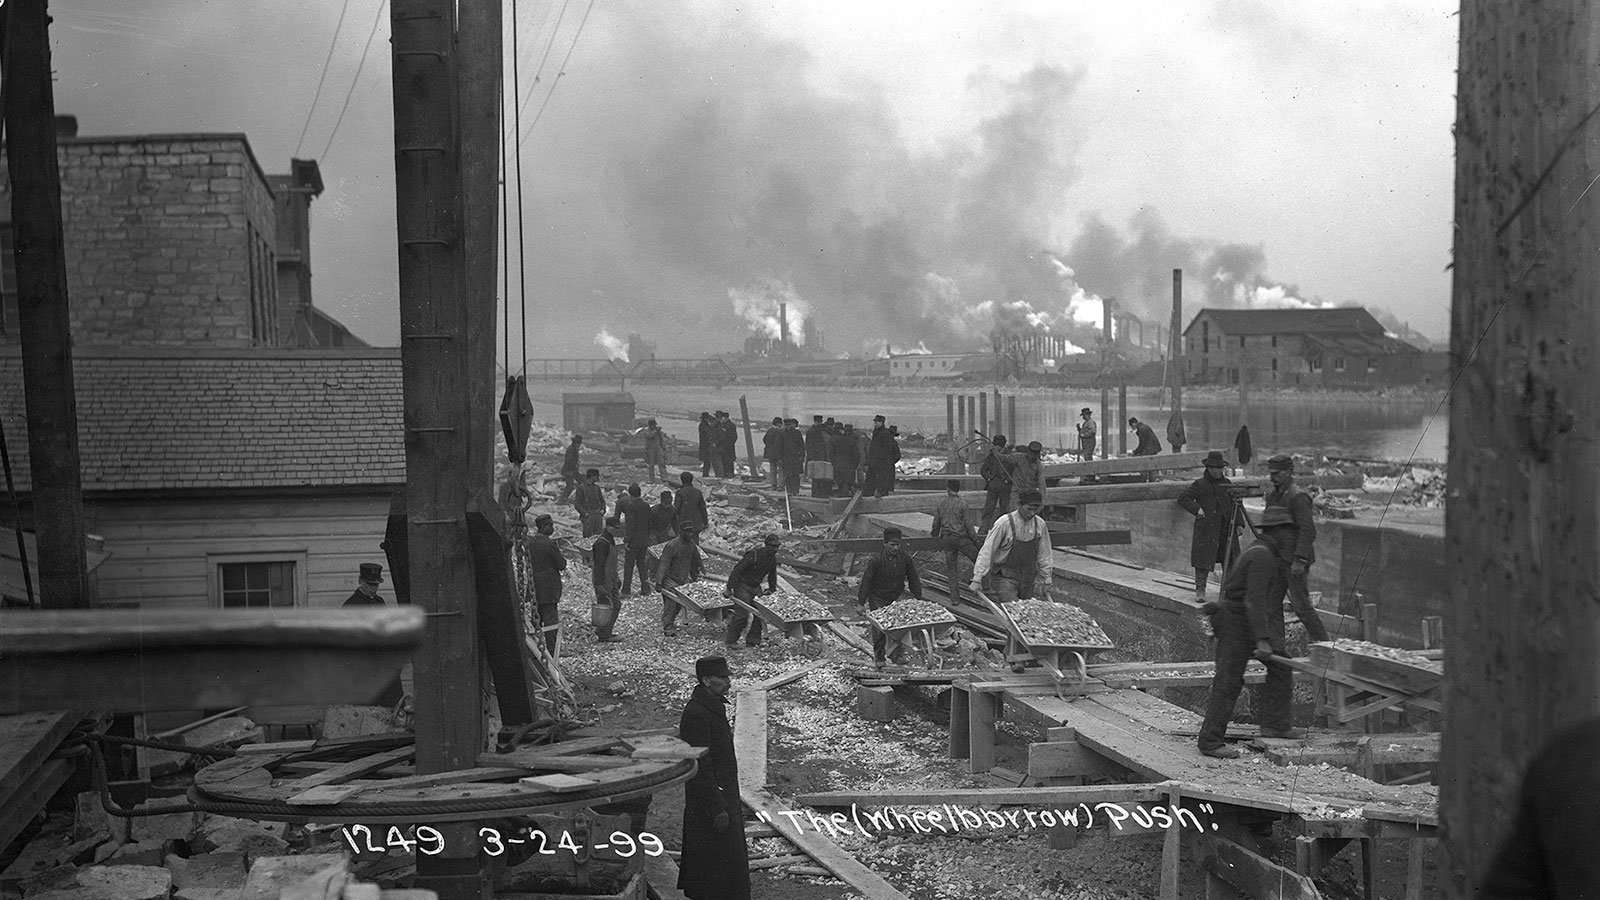 Workers move gravel during lock construction along the Chicago Sanitary and Ship Canal in Joliet, Illinois, on March 24, 1899